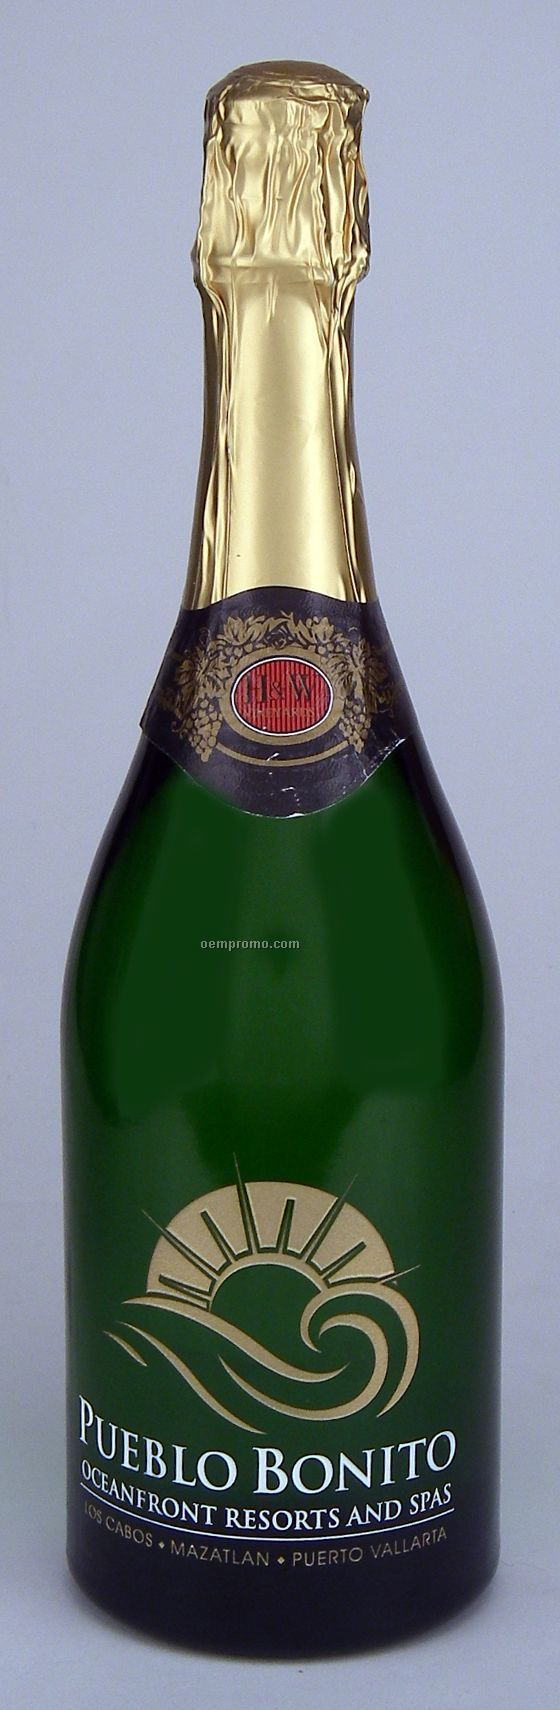 750ml Standard Non-alcoholic Sparkling Grape Juice Etched With 2 Color Fill